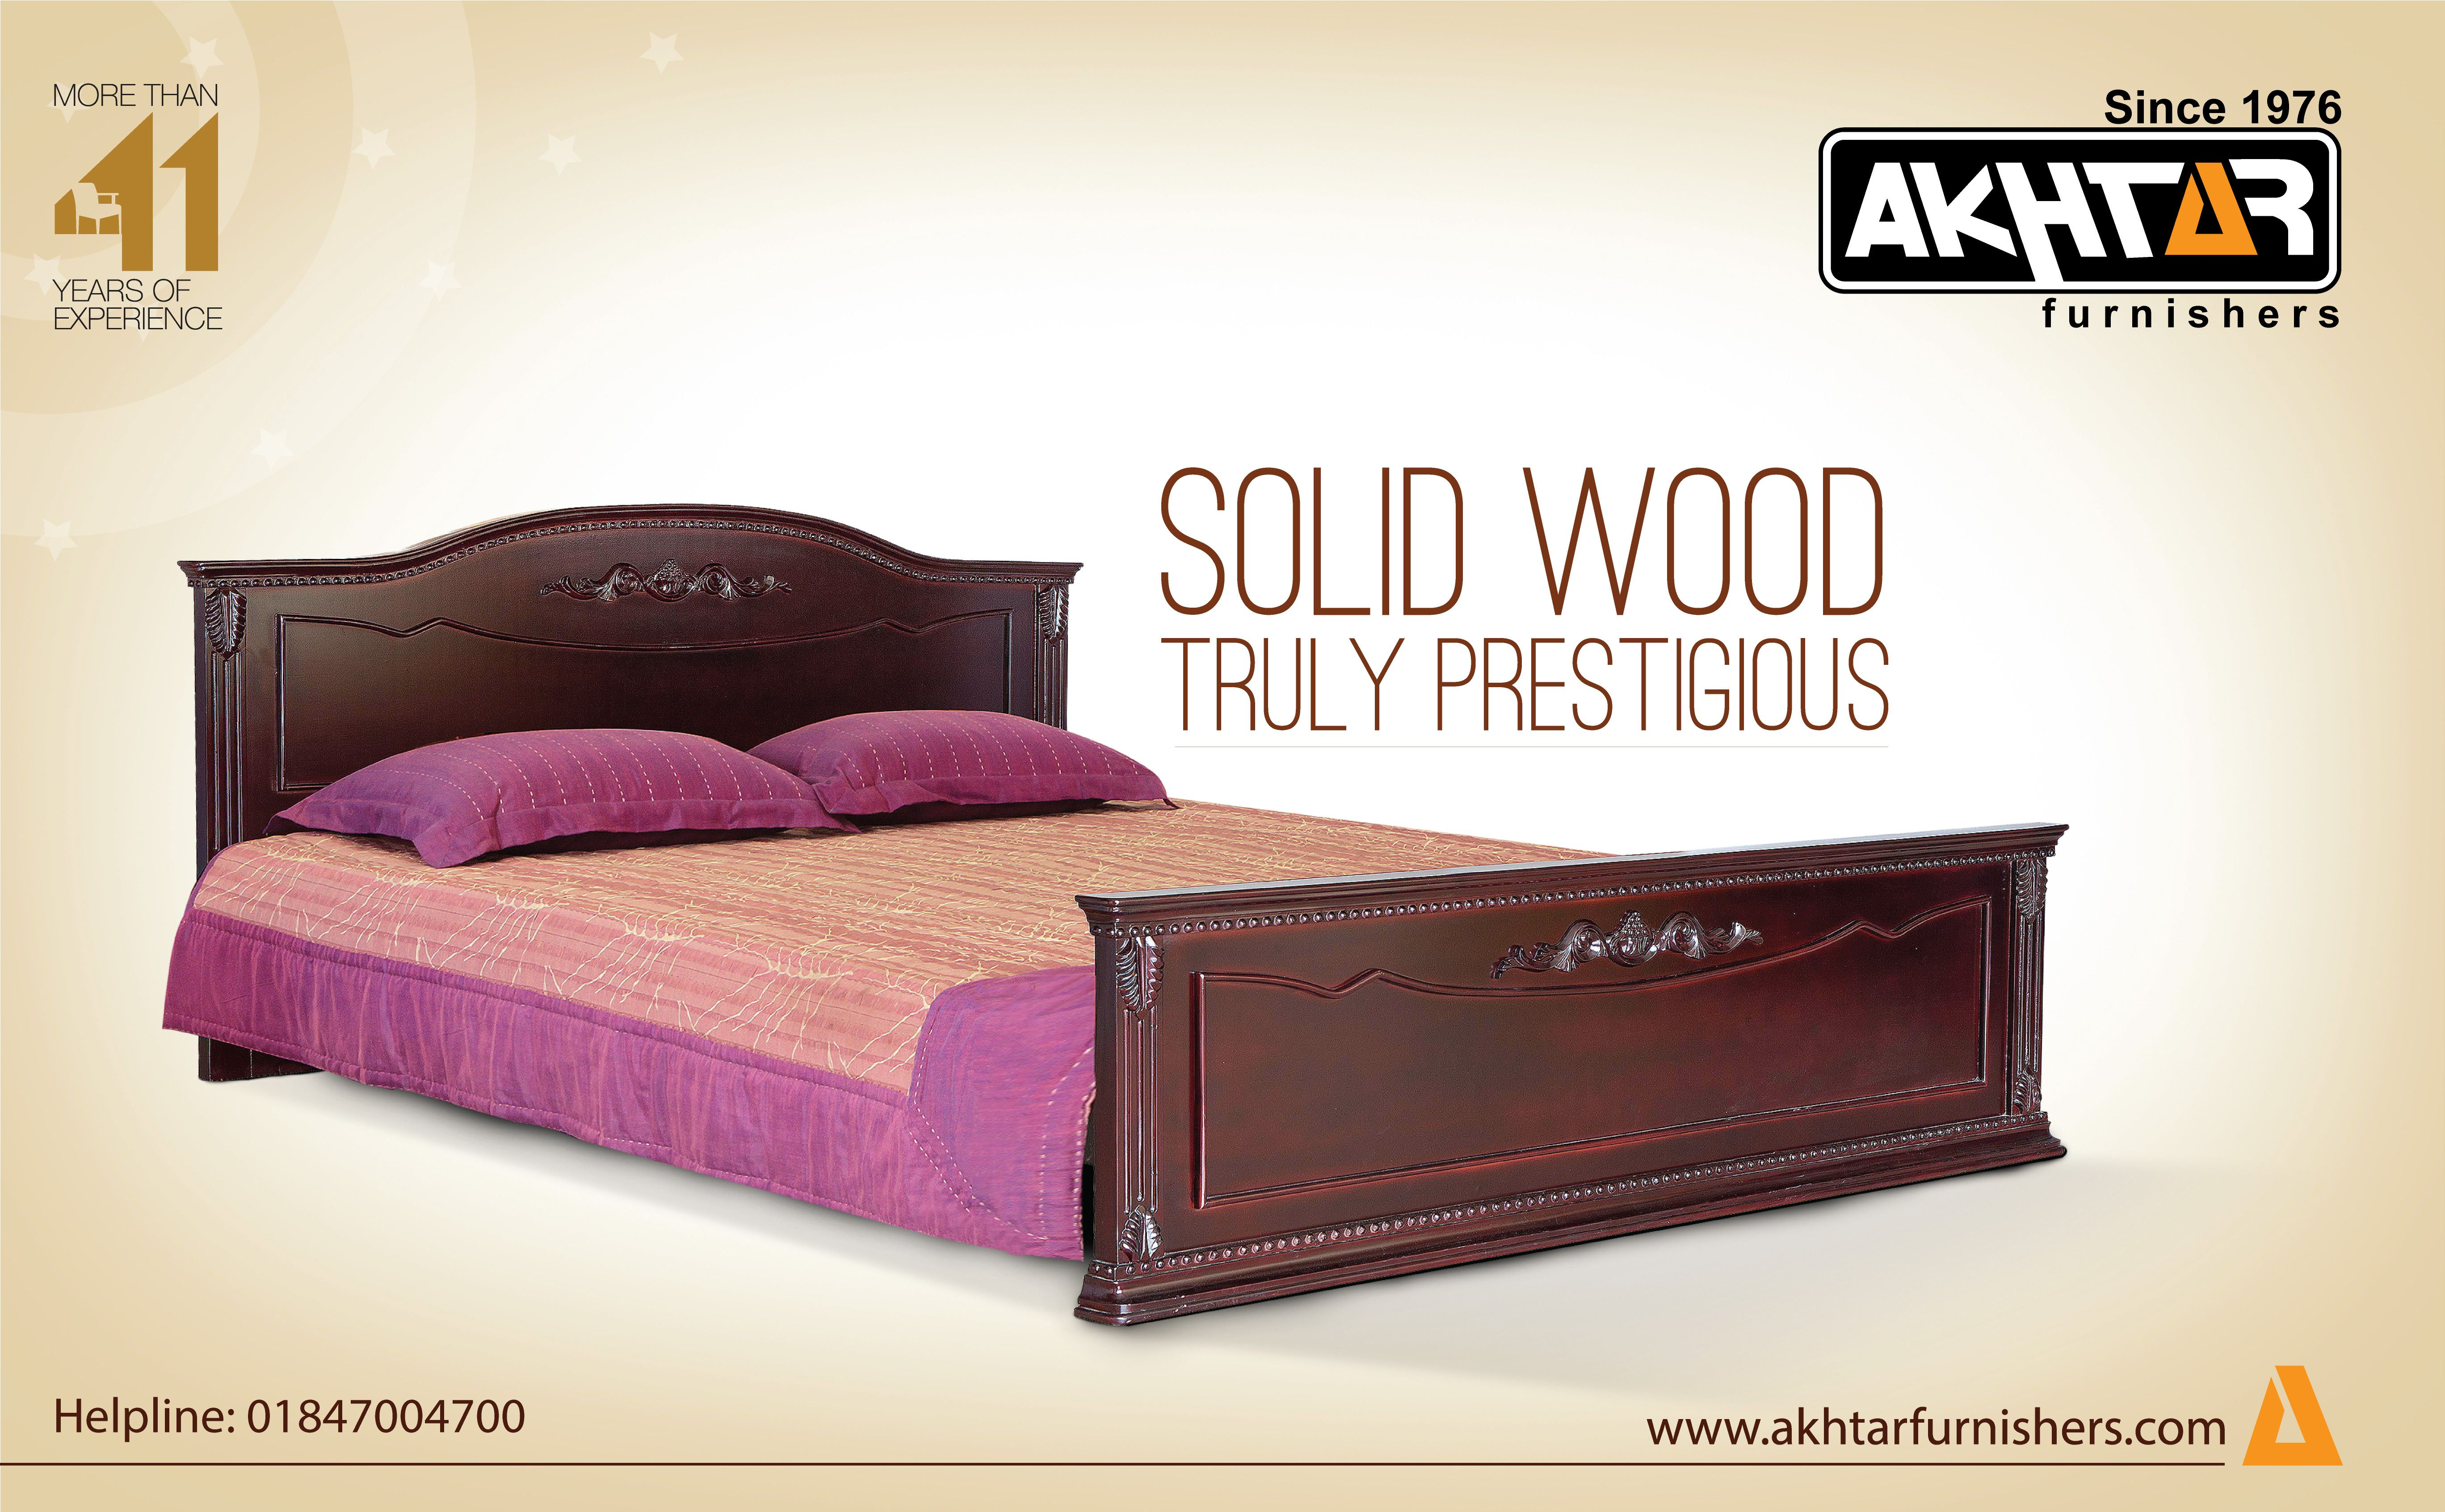 Pin By Akhtar Group On Solid Wood Truly Prestigious Furniture Home Furniture Solid Wood